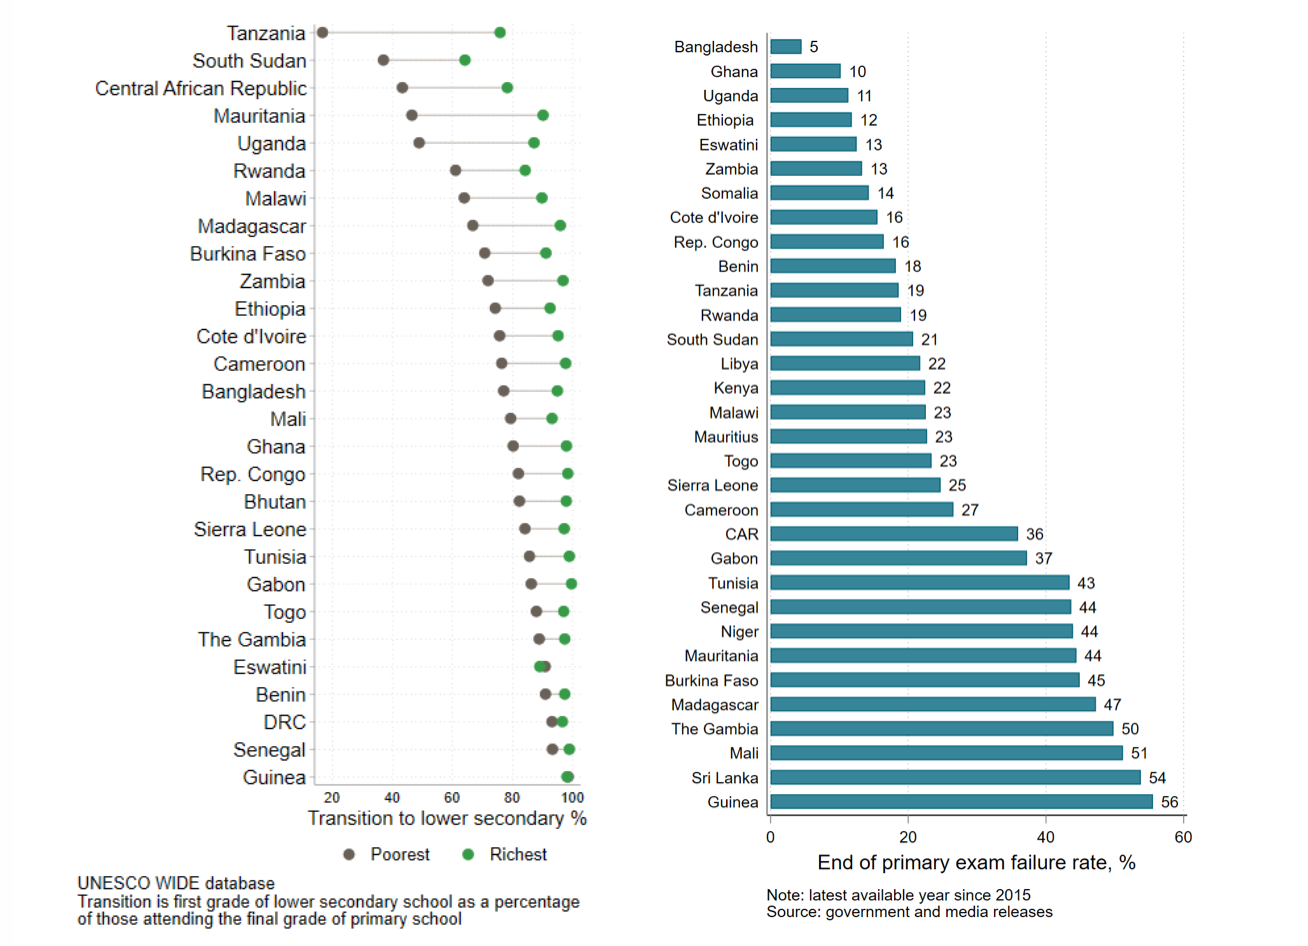 A pair of charts showing that poorer students pass school leaving exams at much lower rates than richer peers in many countries, and that exam failure rates are extremely high in many countries